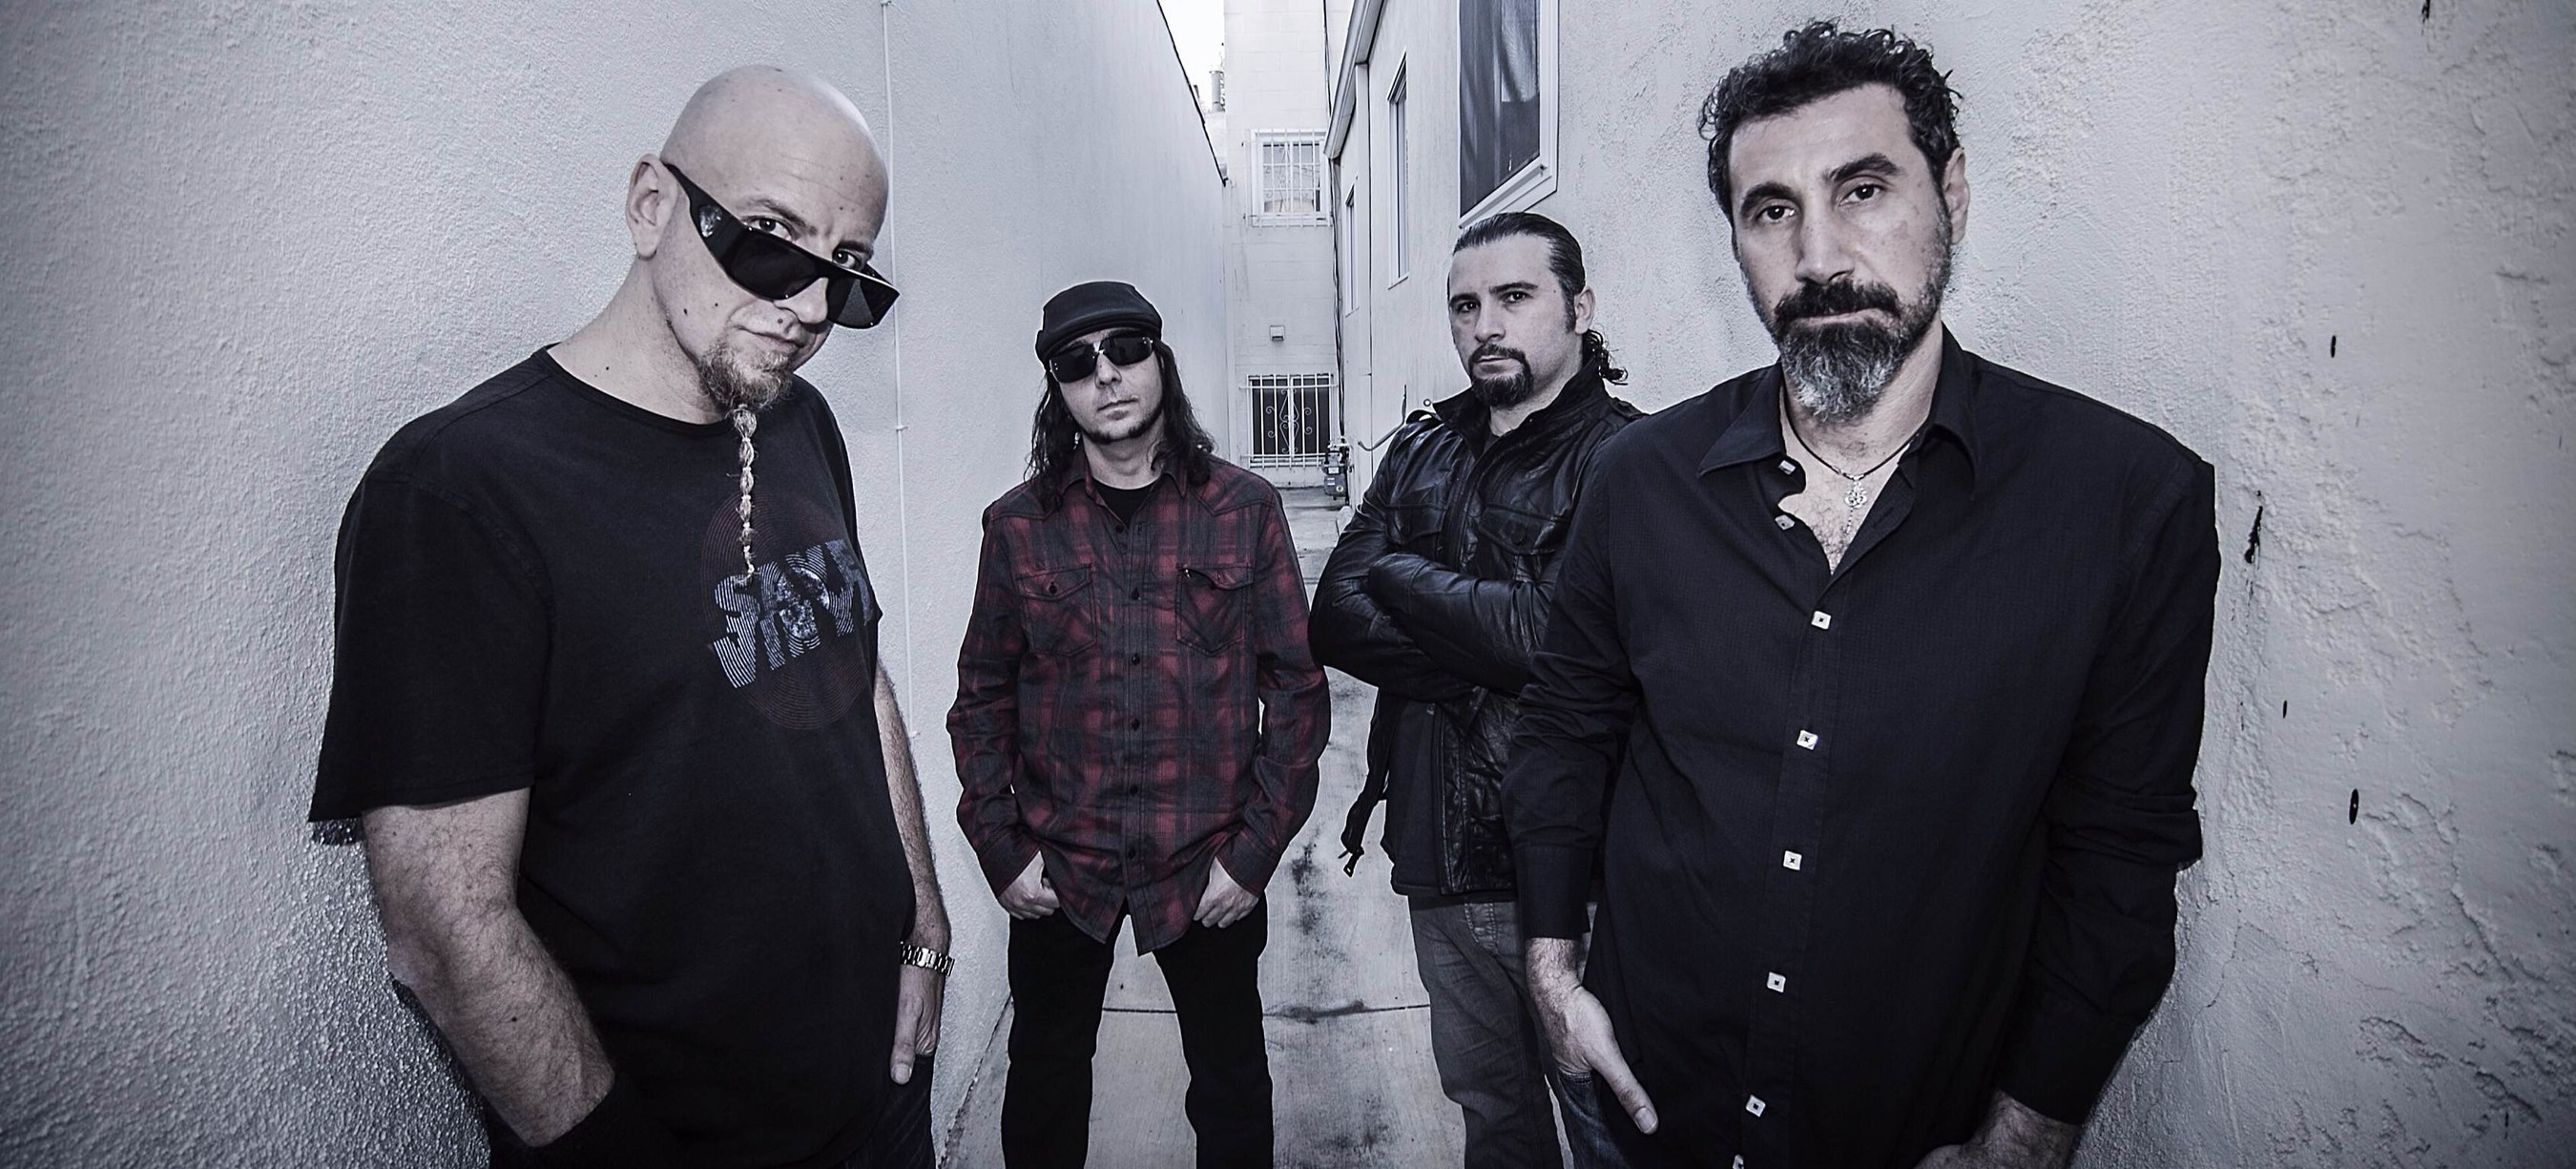 Grammy Winning Band System Of A Down To Commemorate 100th Anniversary Of Armenian Genocide With World Tour